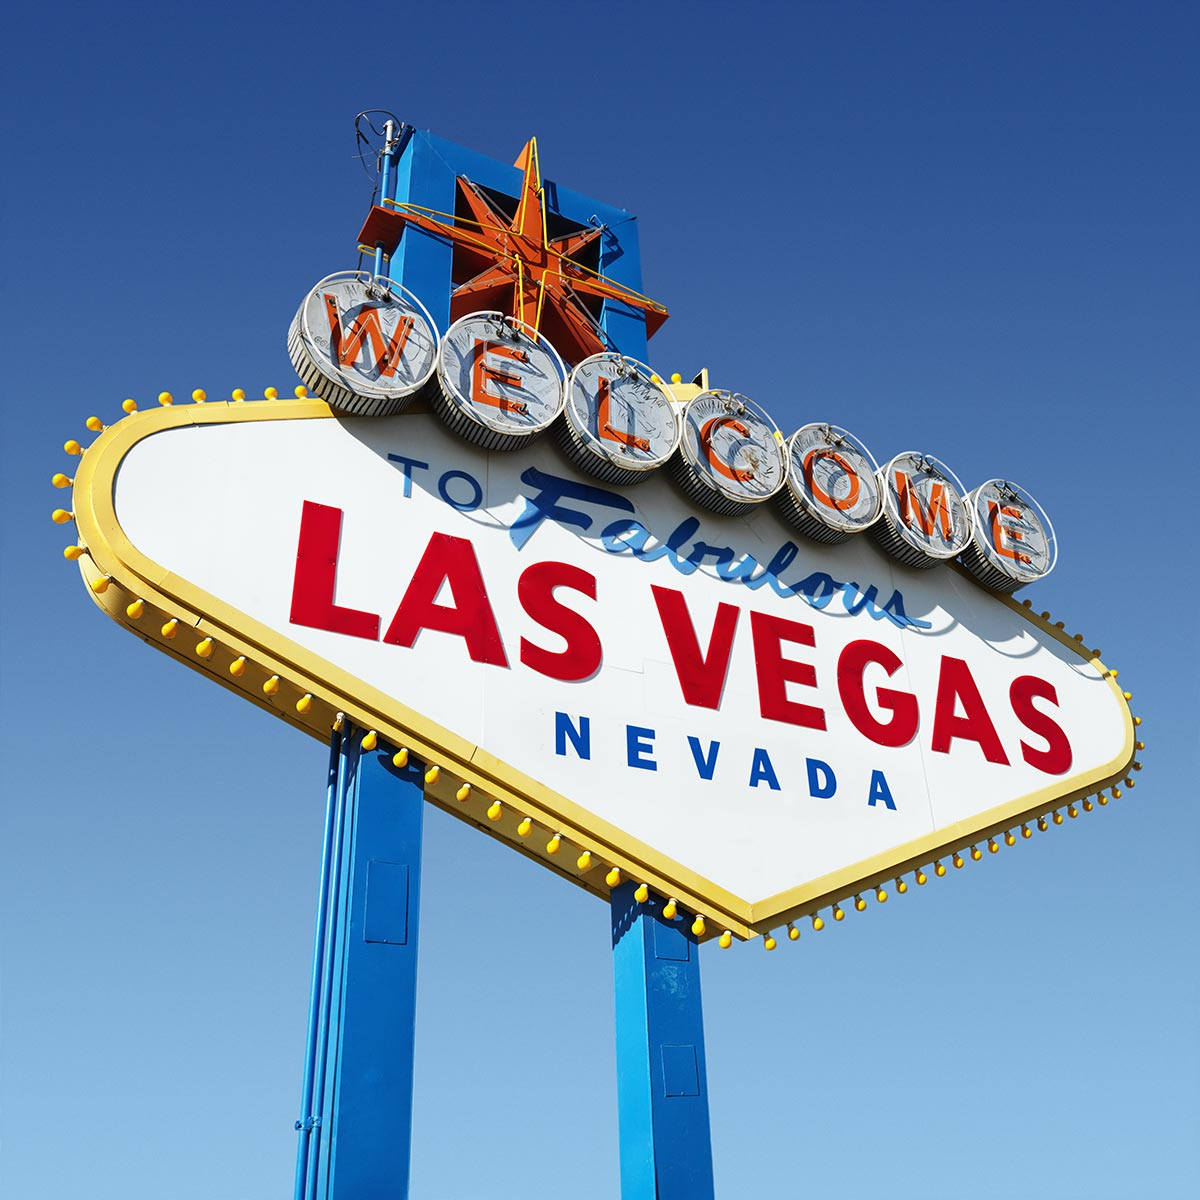 Check out These Cool Things to Do in Vegas